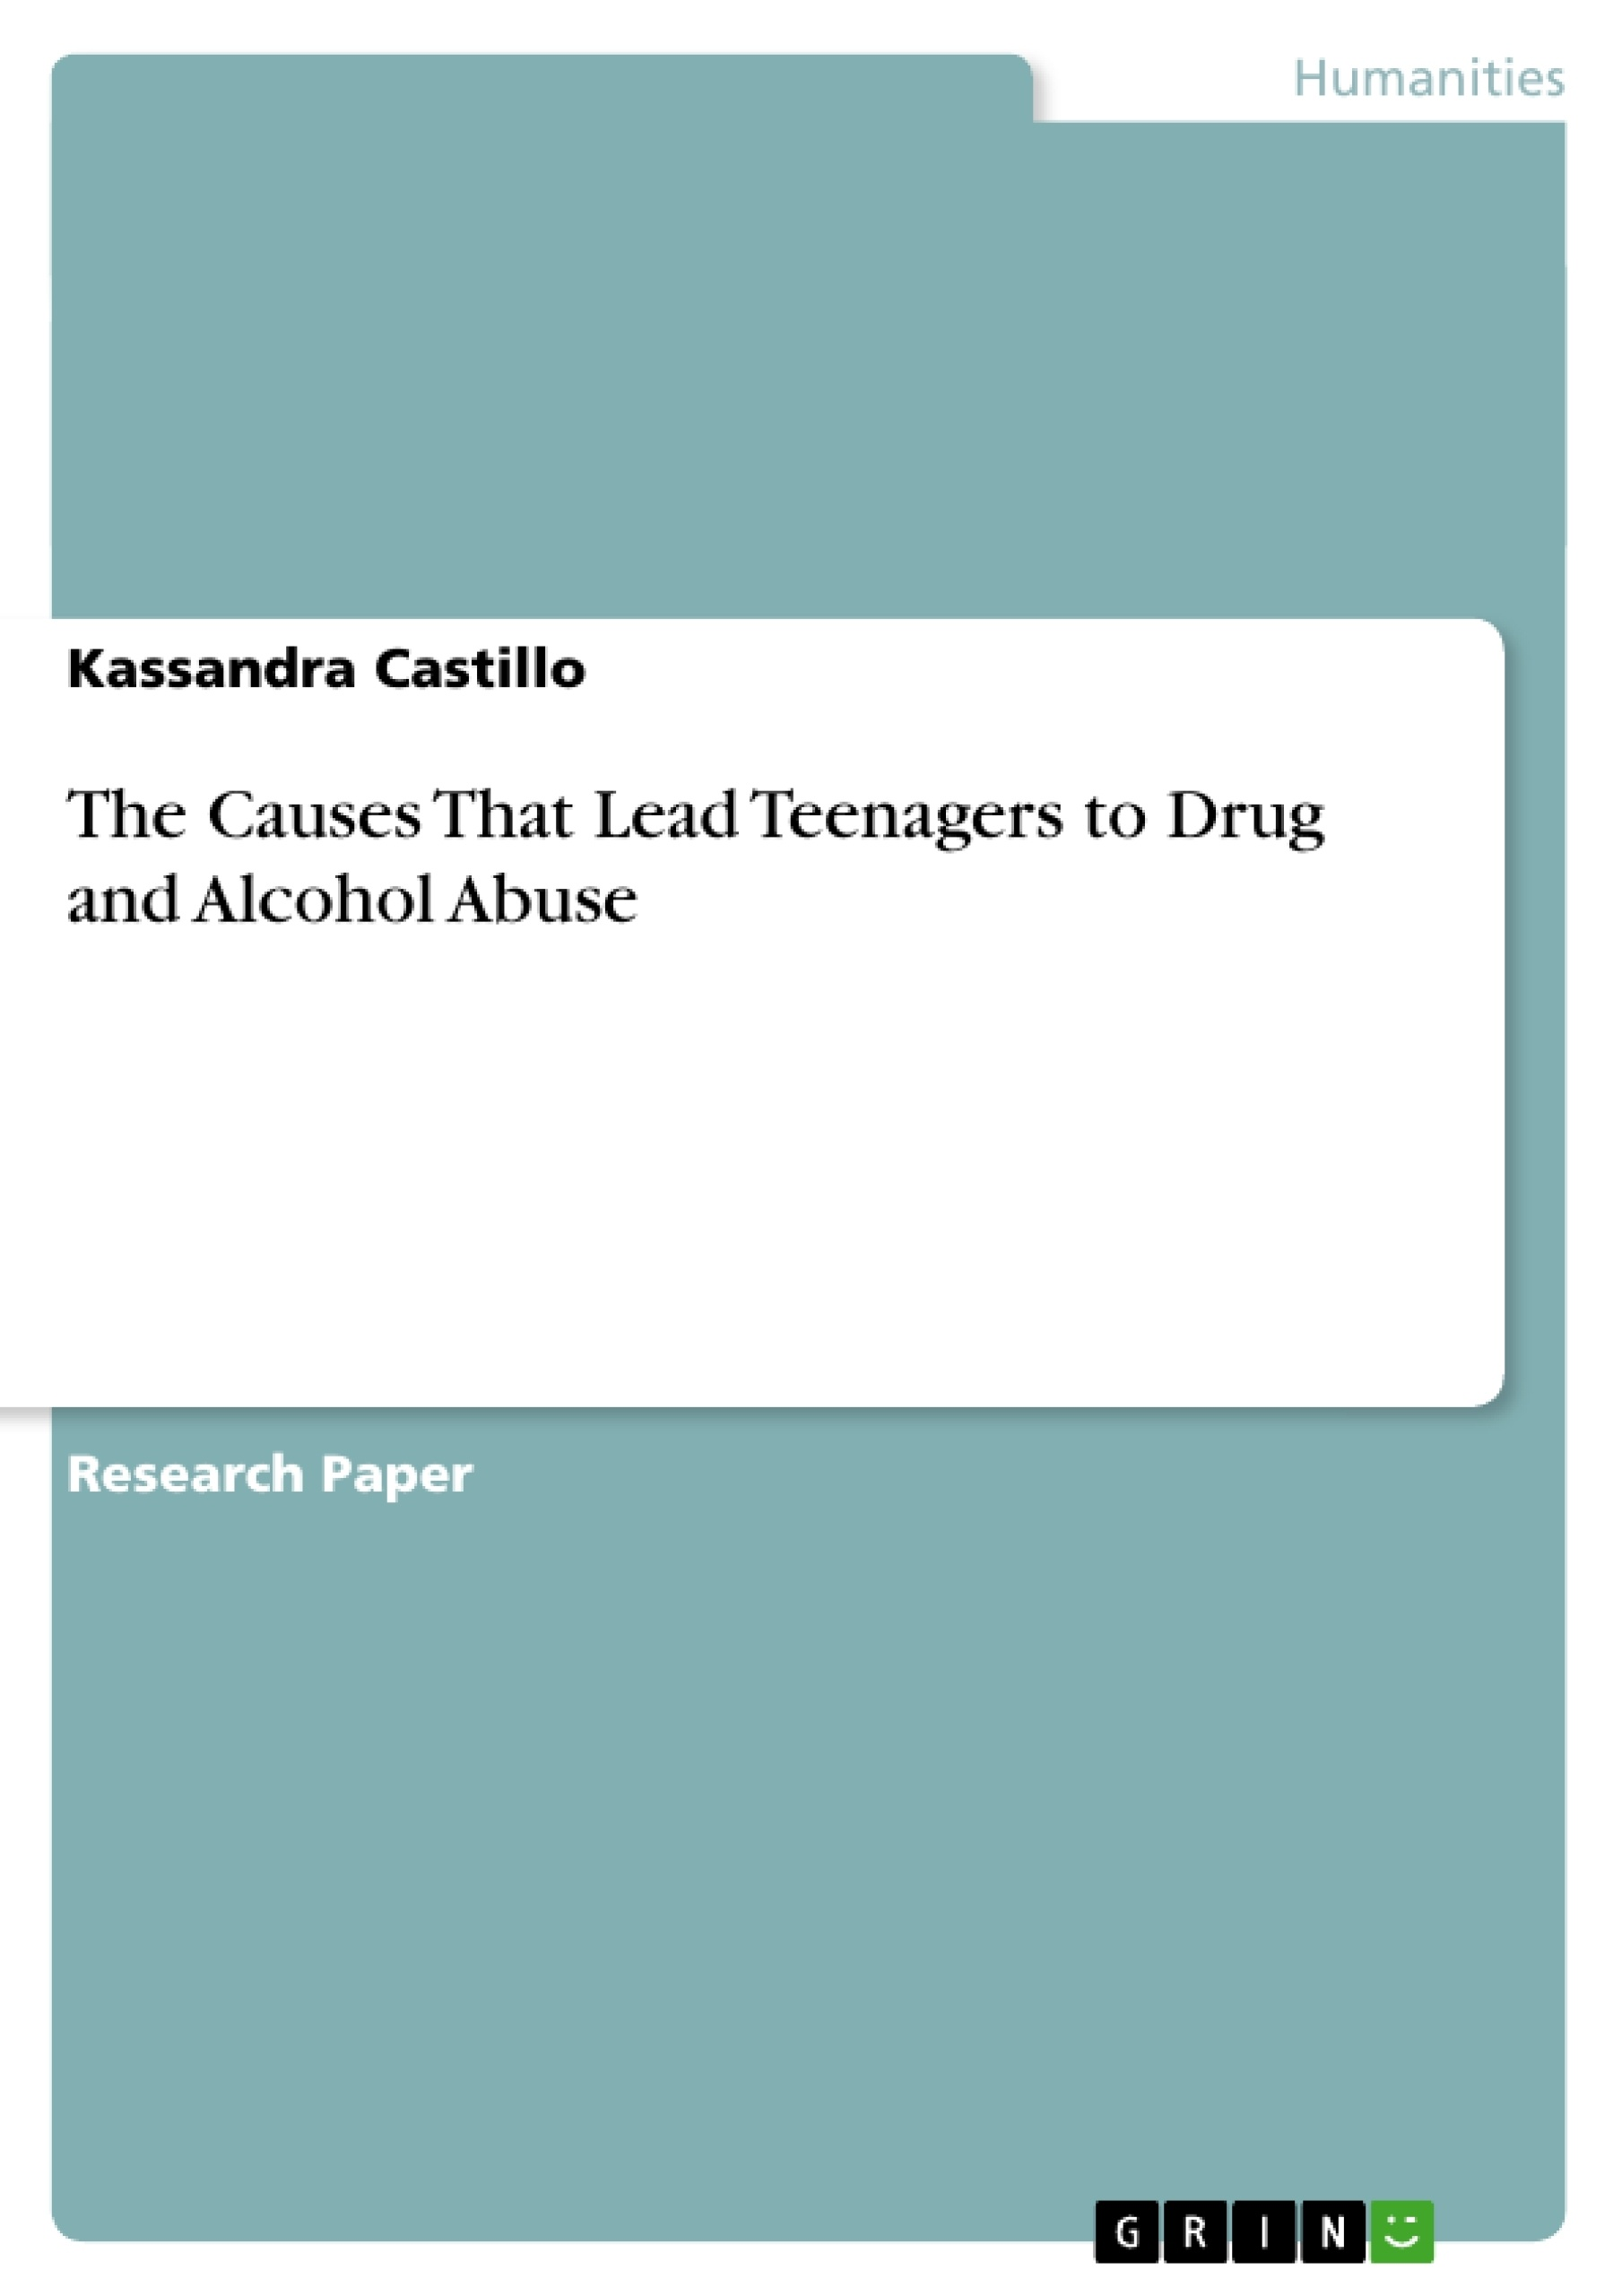 title for drug addiction essay themenfindung dissertation pleasant river garden club similar to informative essay on drug addiction docx